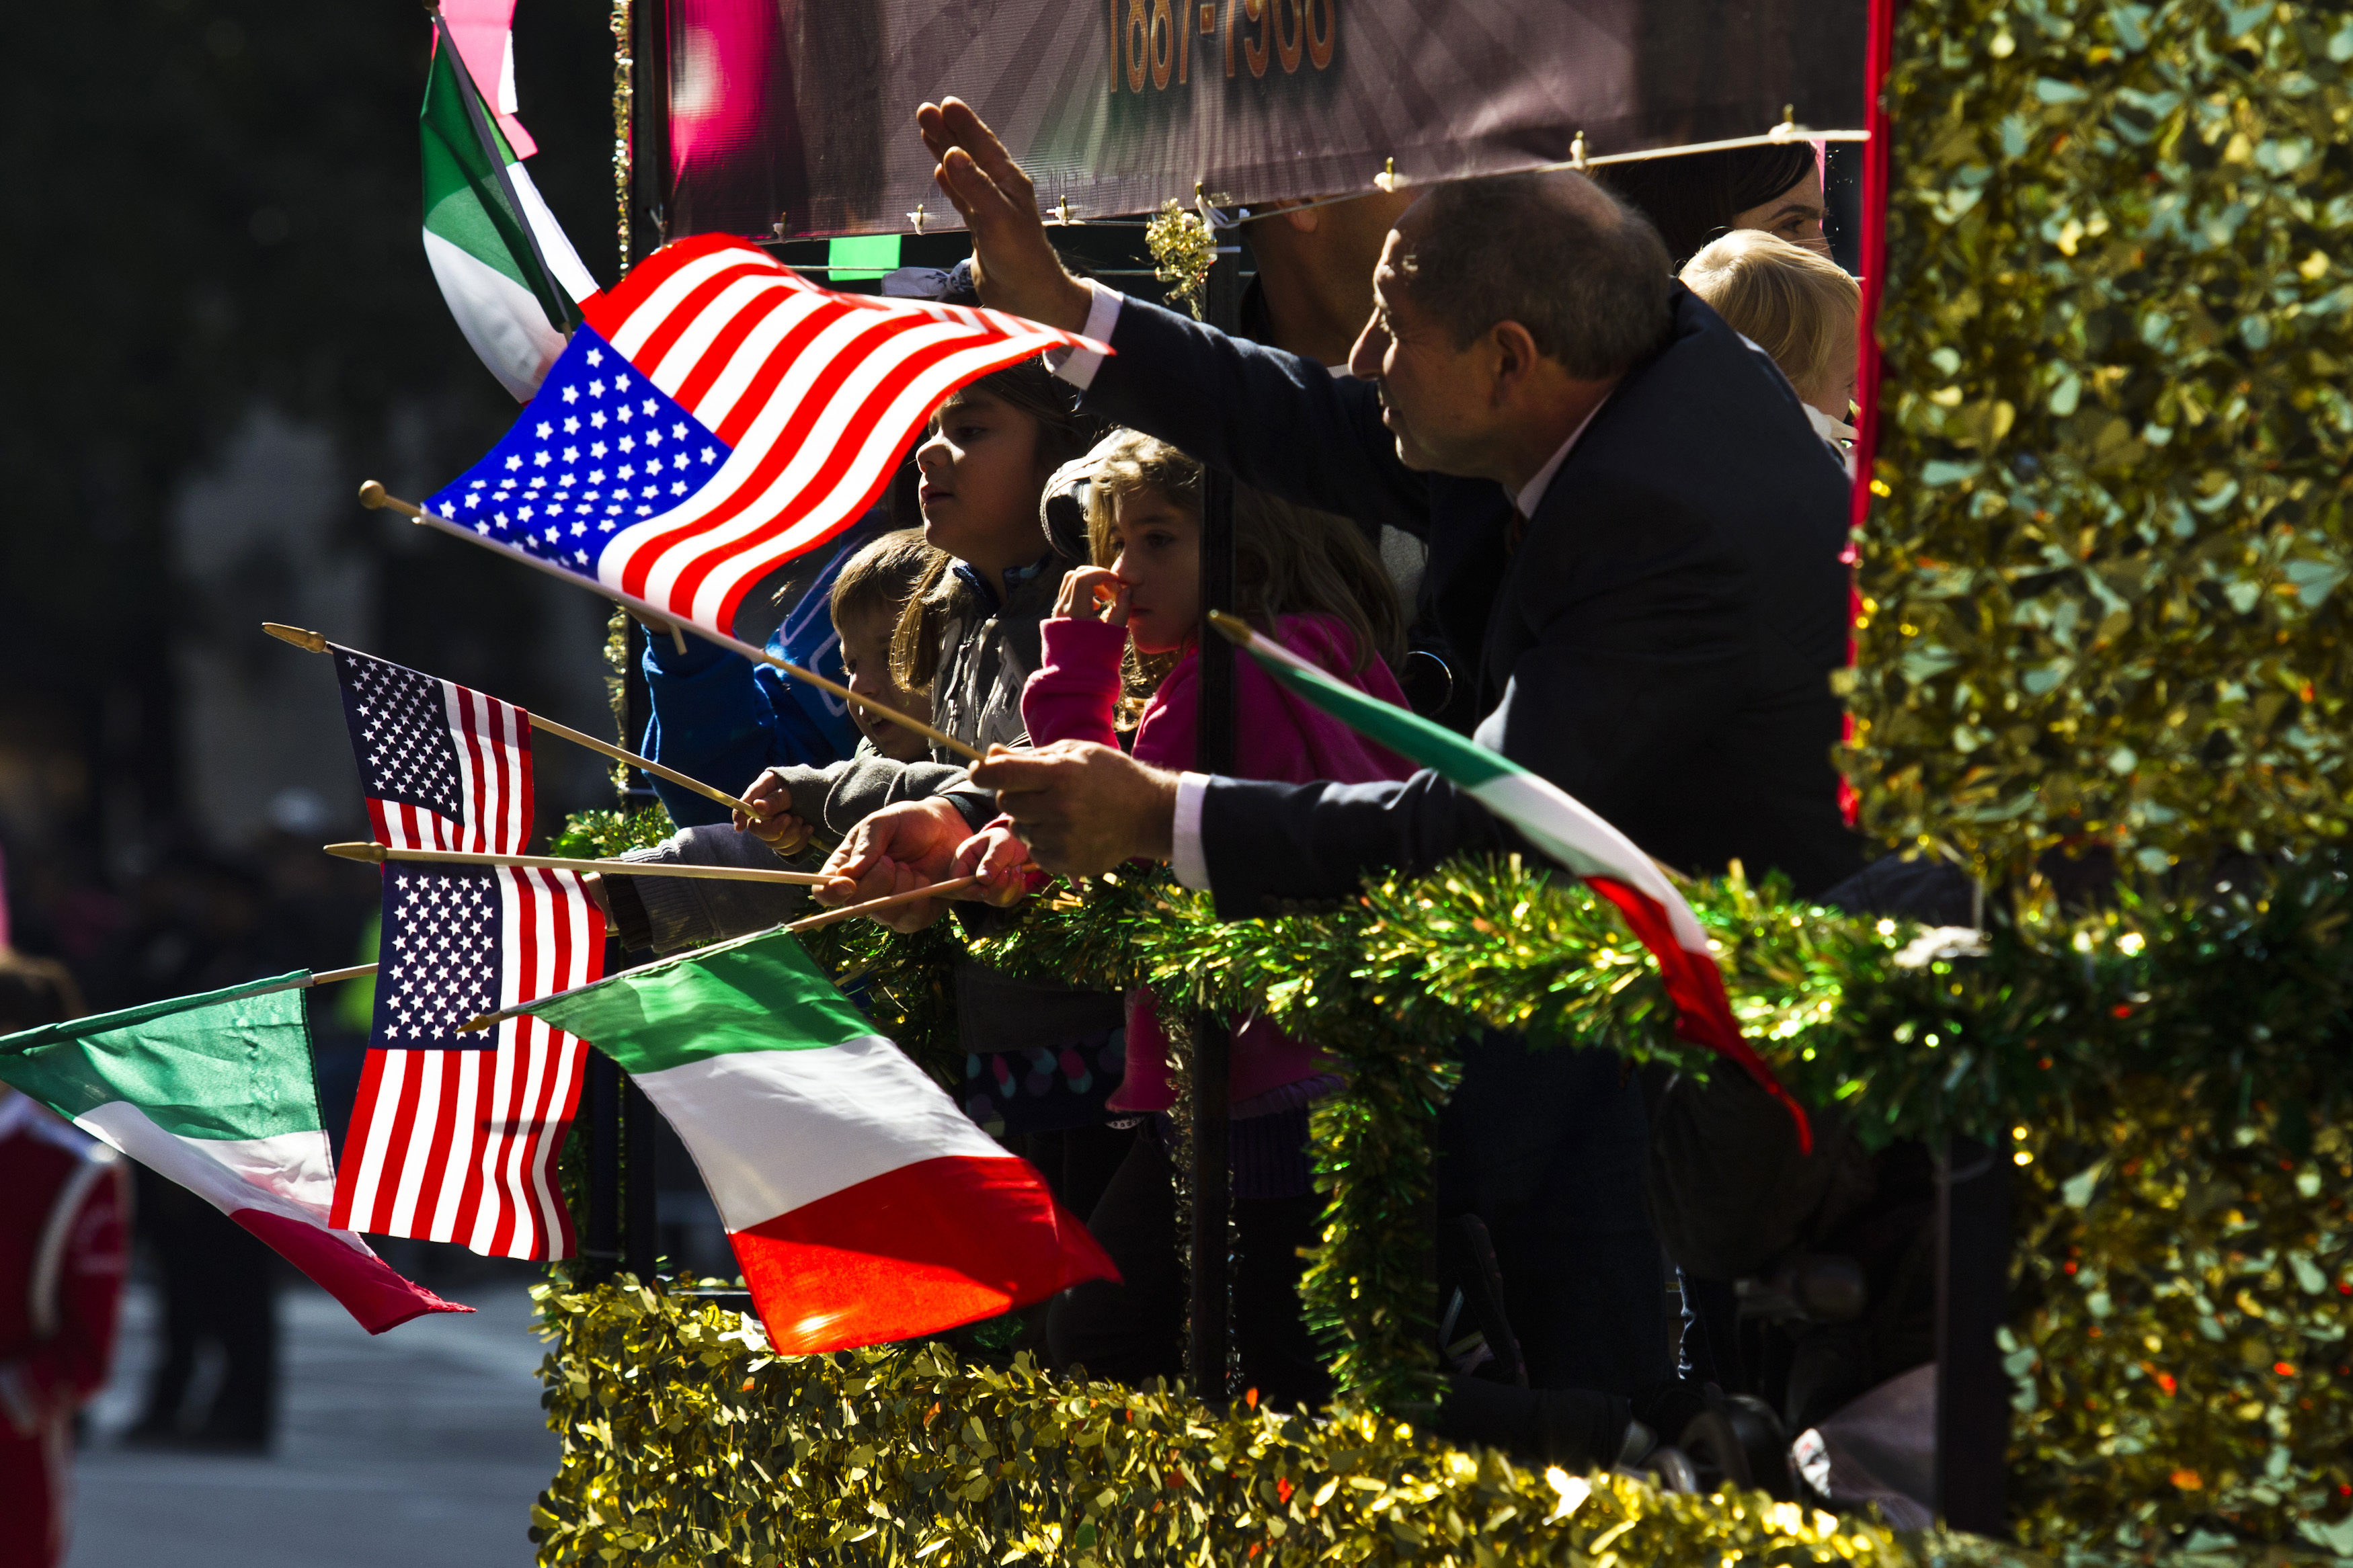 People take part in the 69th Annual Columbus Day Parade in New York in 2013.